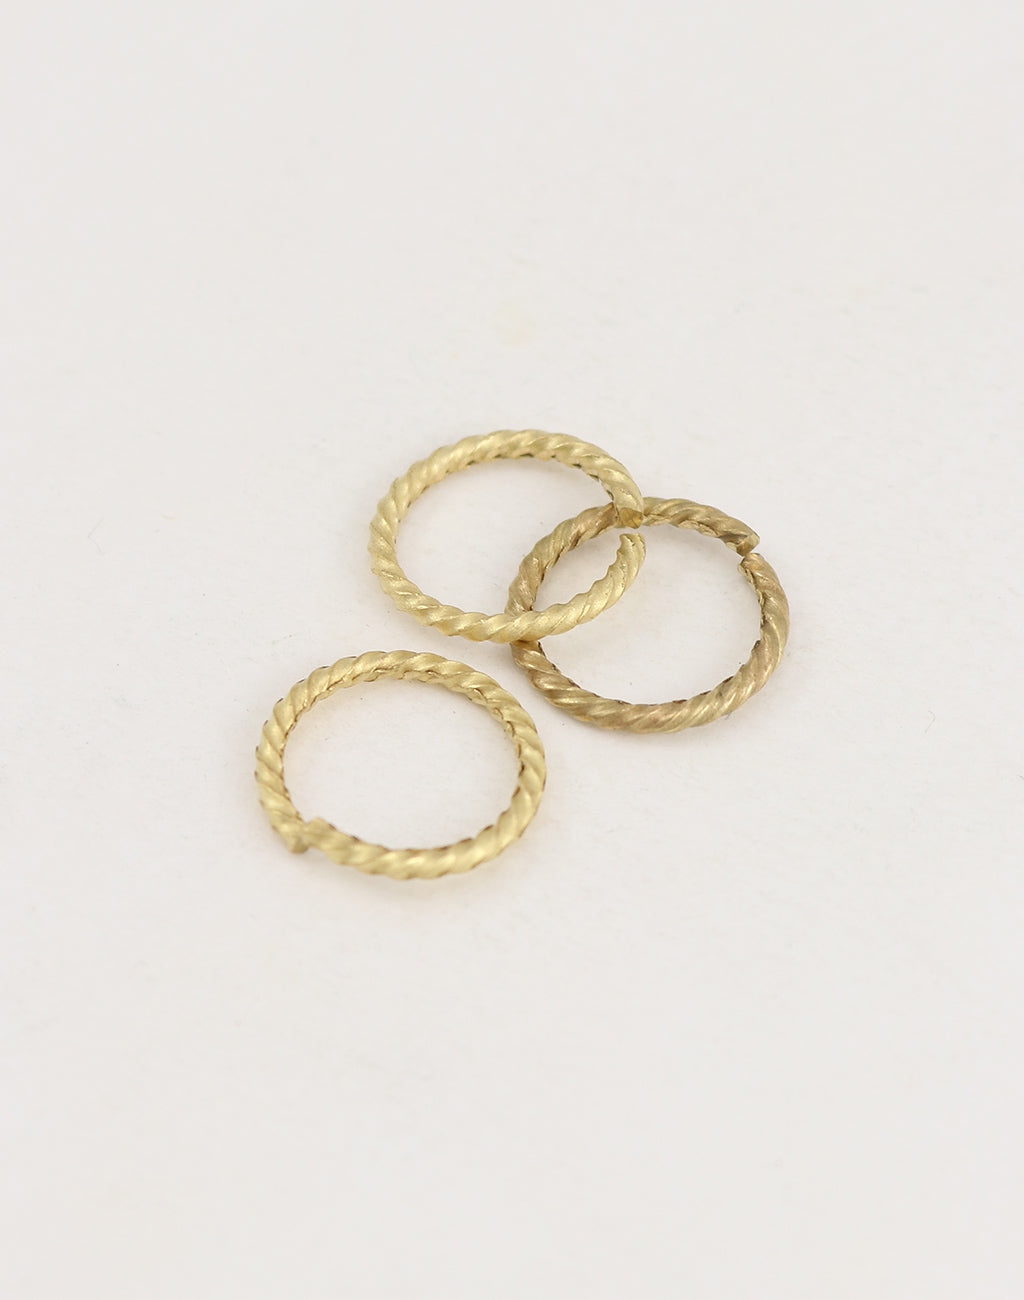 Roped Jump Ring, 17mm, 13ga, (3pcs)